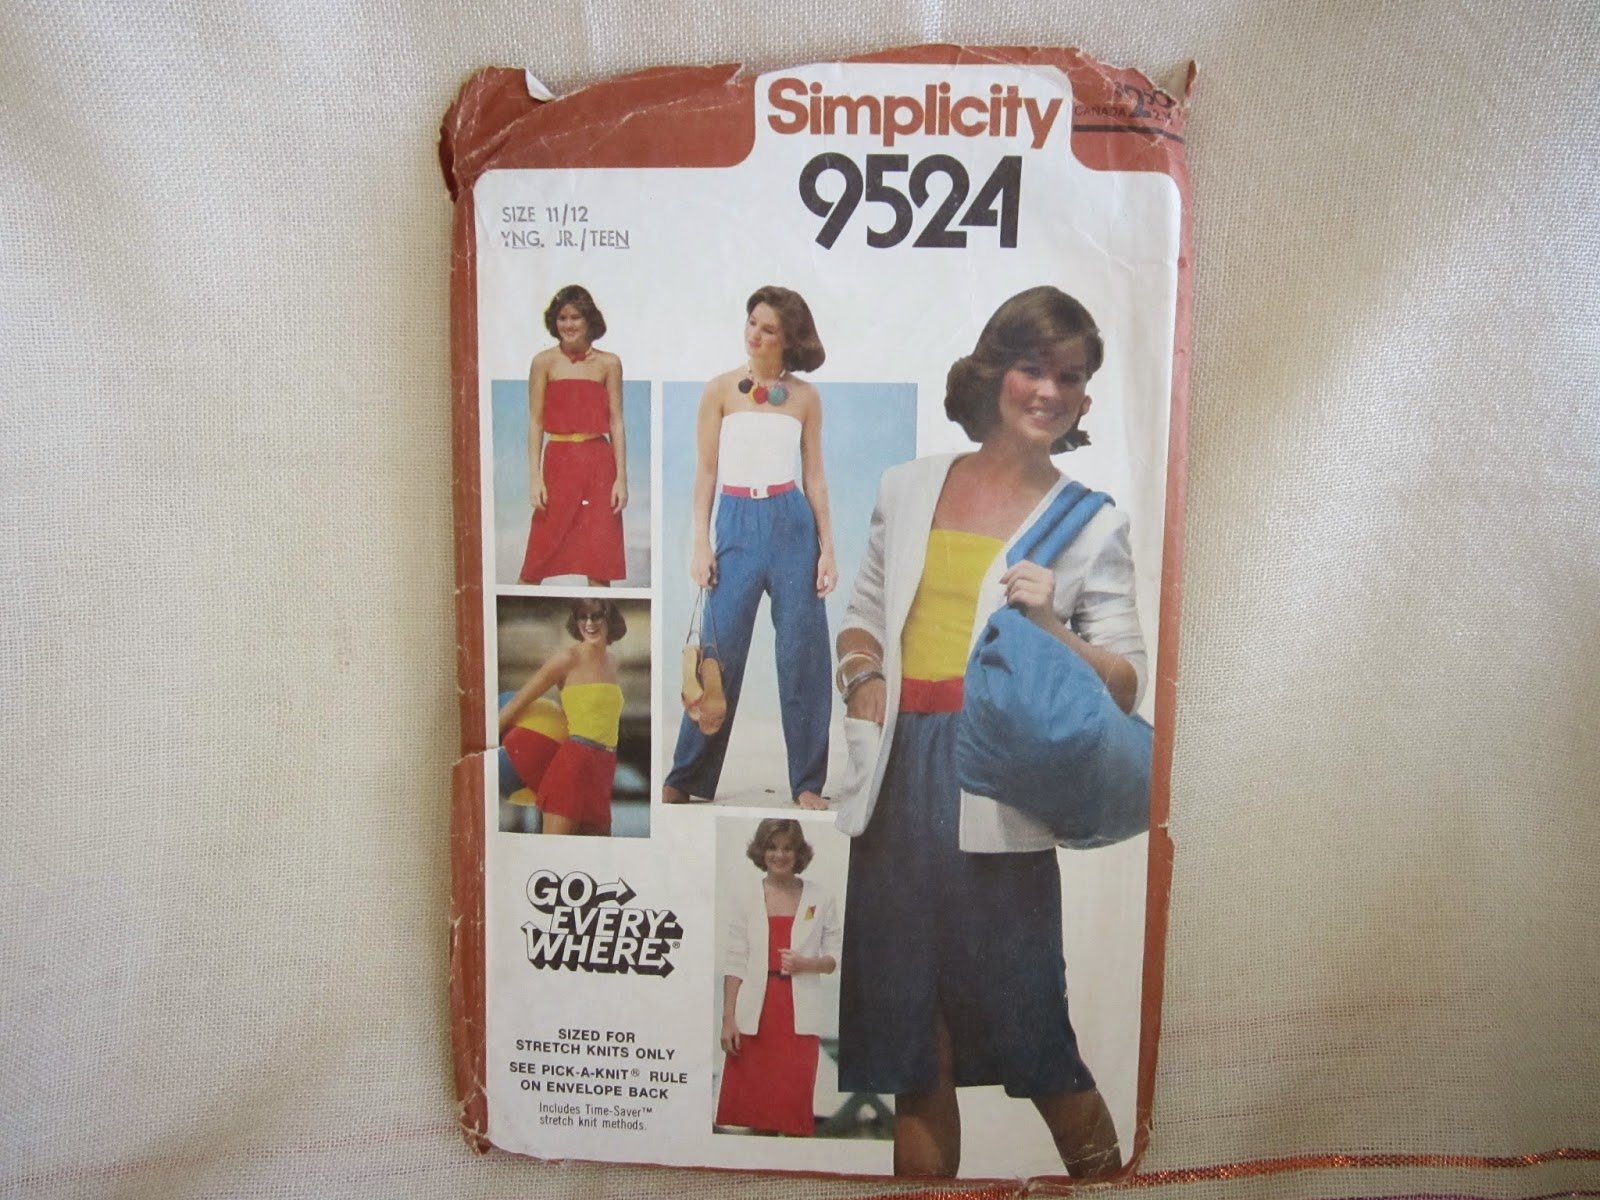 https://www.etsy.com/listing/229063944/vintage-simplicity-go-every-where?ref=shop_home_active_1